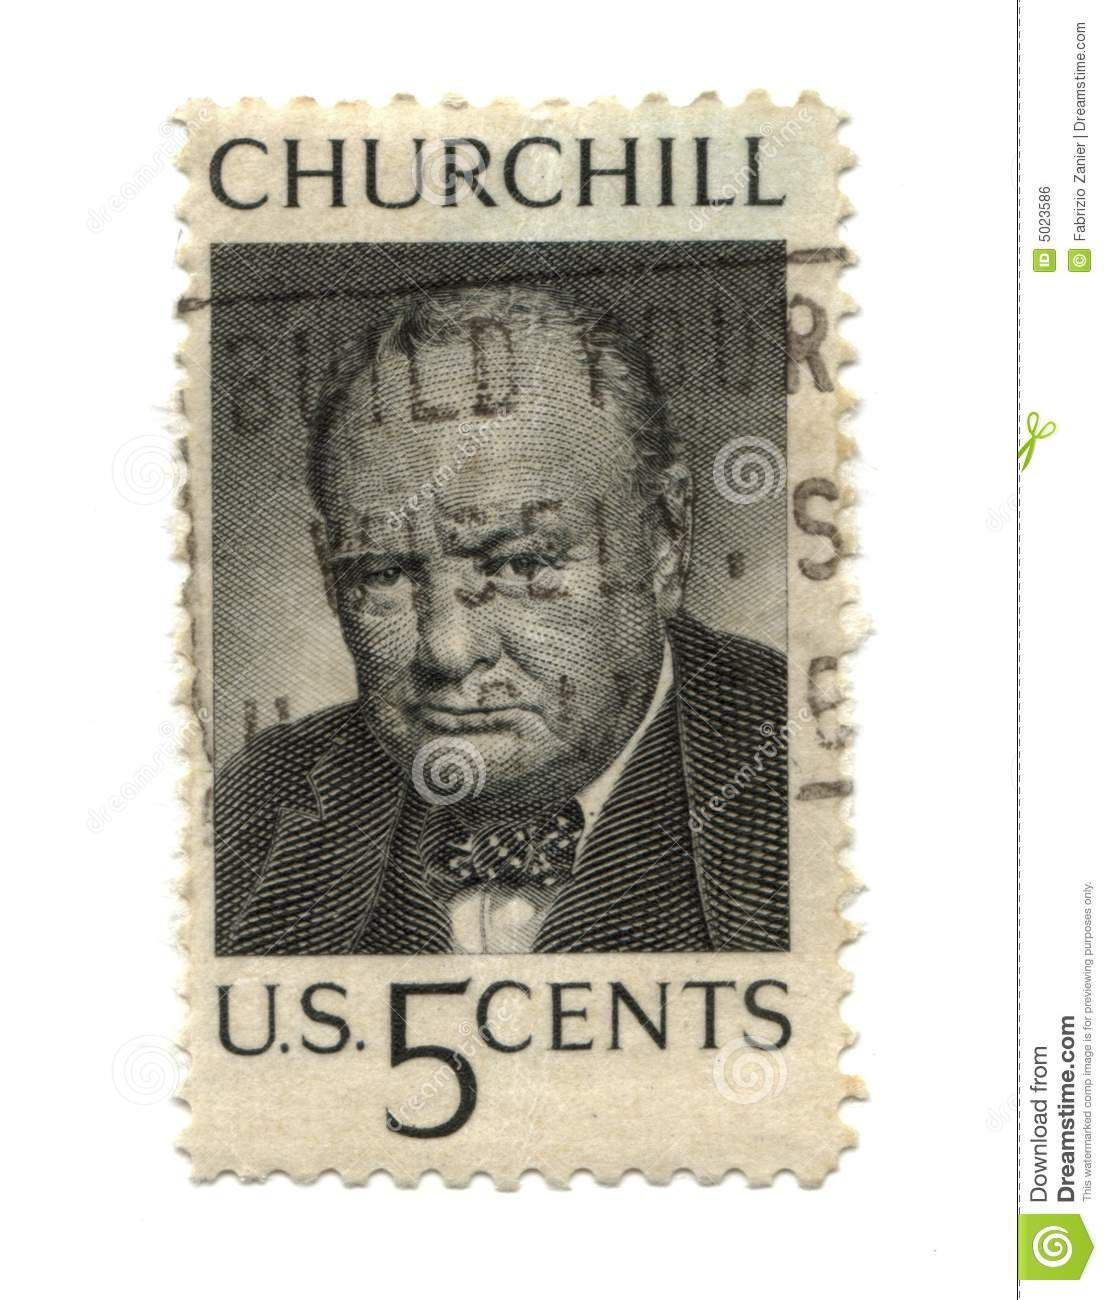 viintage stamps | Old postage stamp from USA five cent - Churchill.